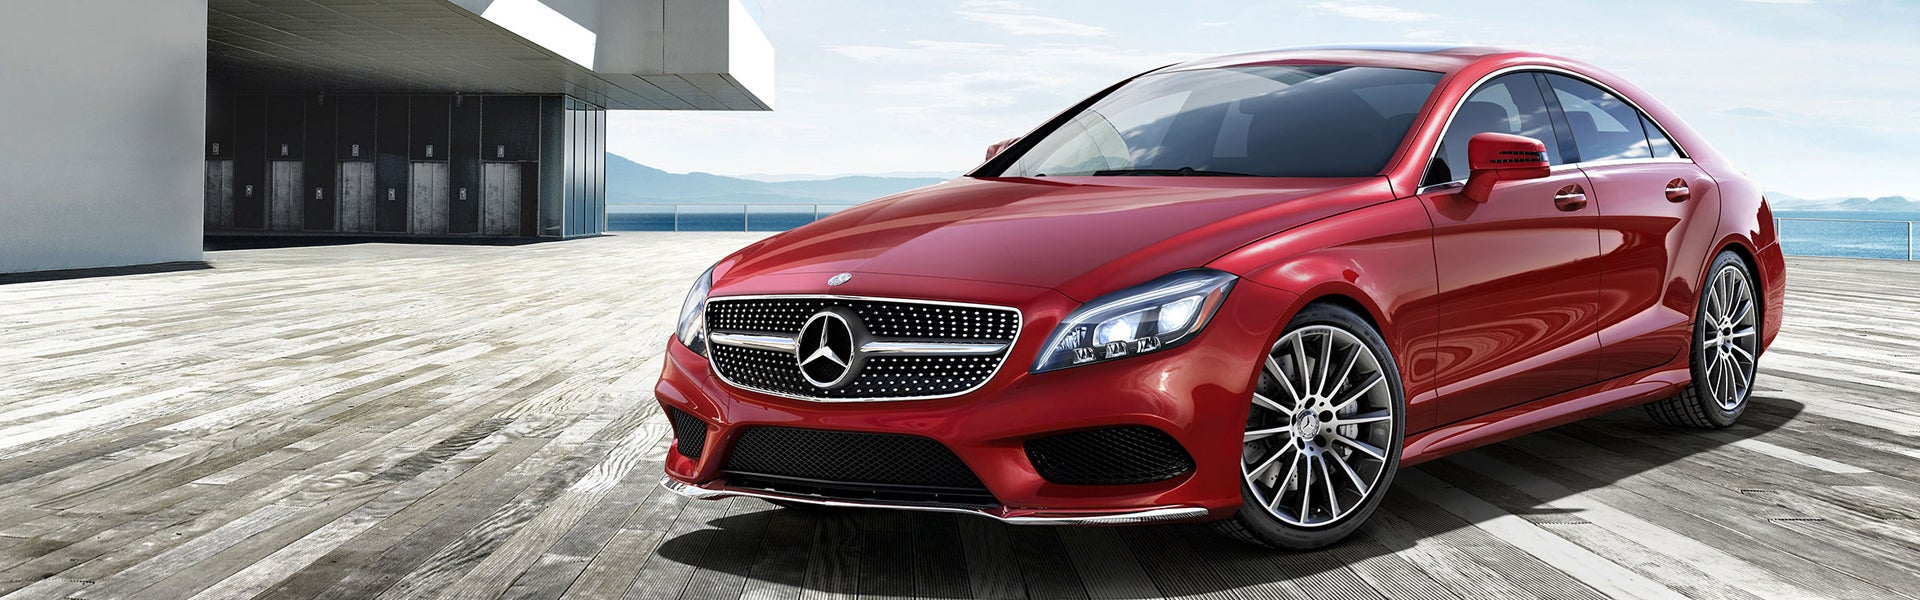 2018 mercedes benz cls class coupe in raleigh nc for Mercedes benz raleigh nc sale